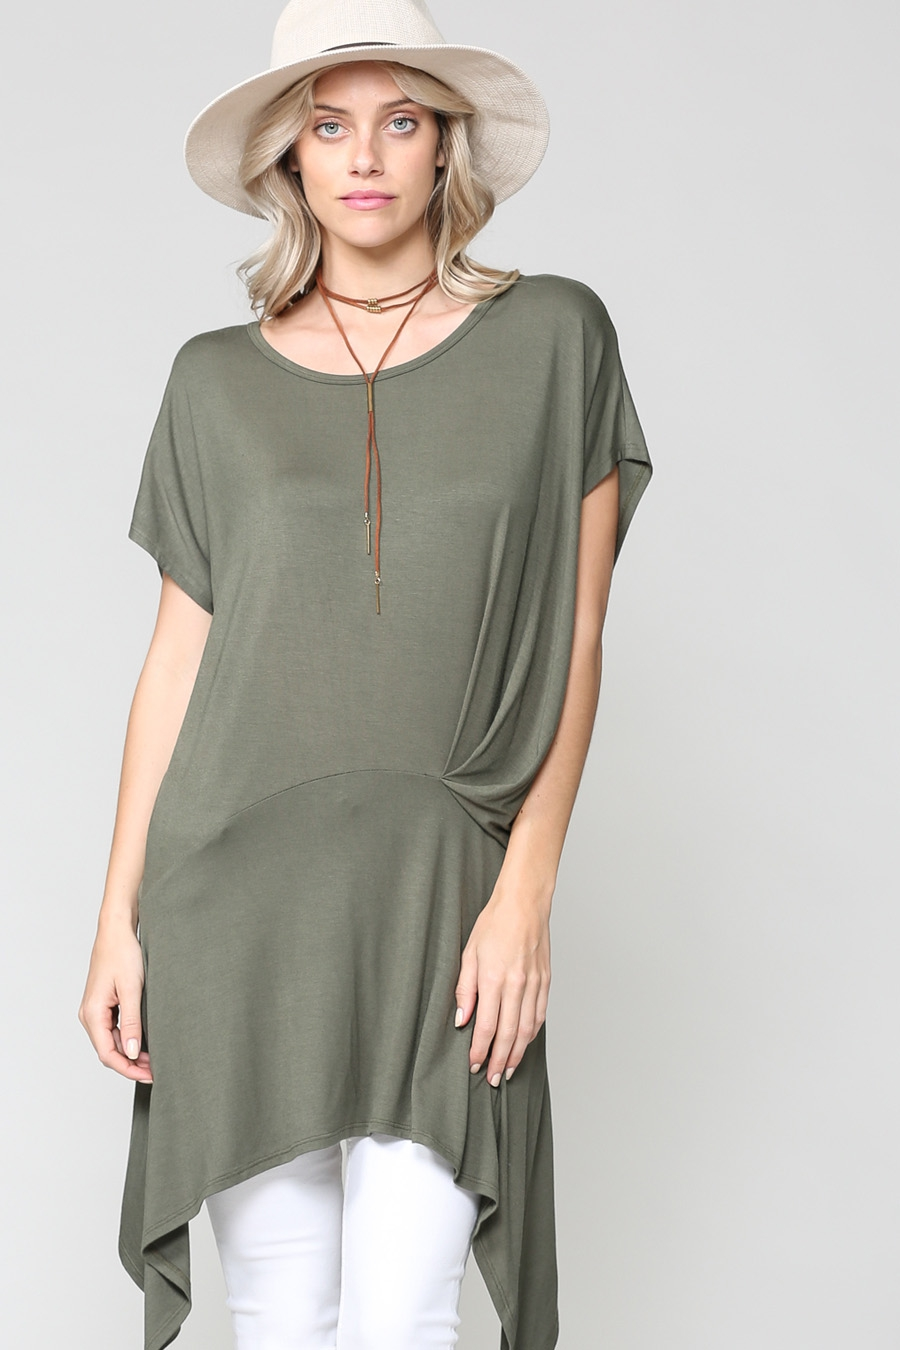 SOLID HIGH LOW HEM CAP SLEEVE TUNIC - orangeshine.com